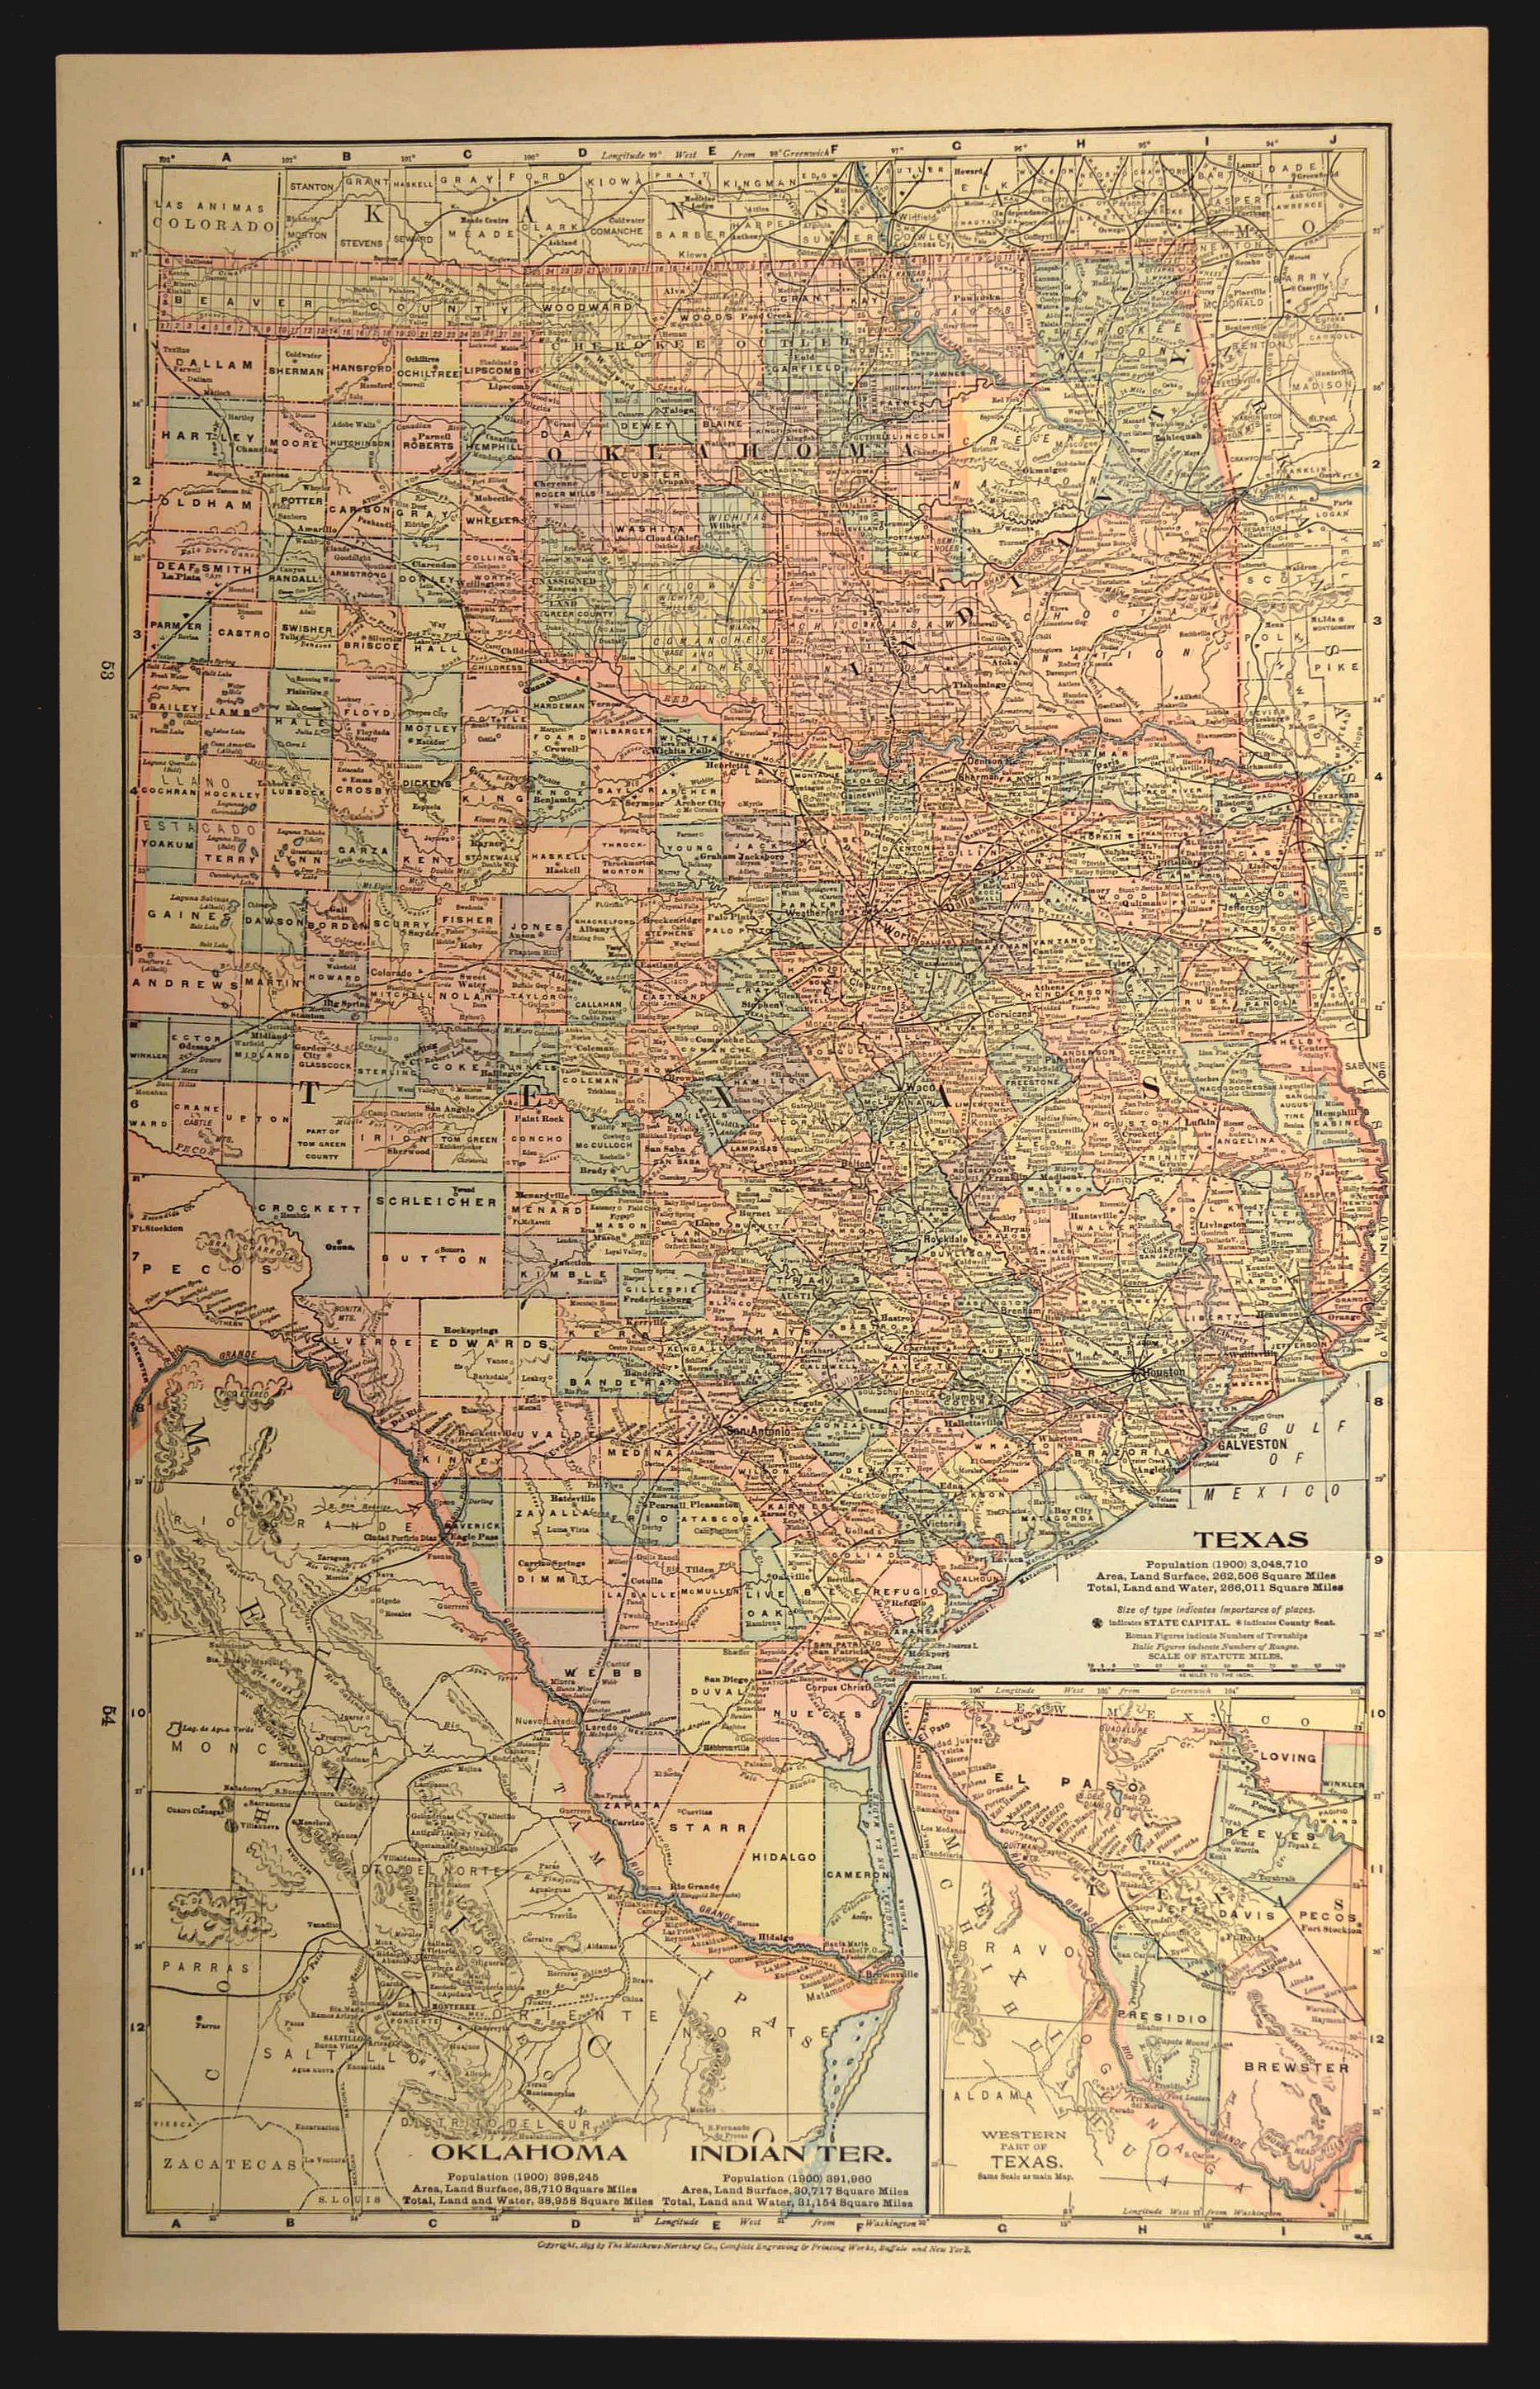 Texas Map Of Texas Wall Art Decor Large Oklahoma Map Antique | Etsy - Large Texas Wall Map